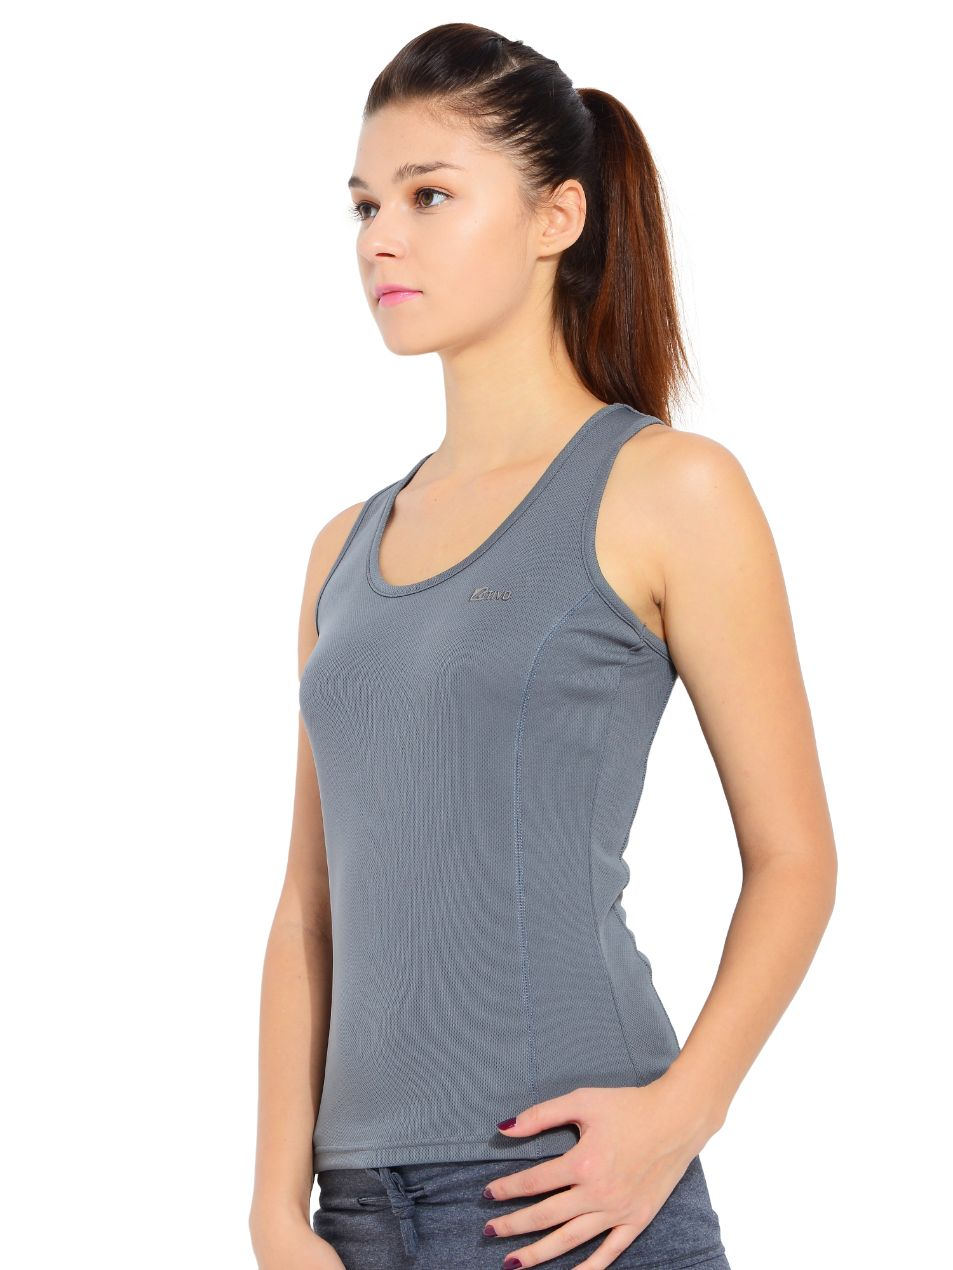 ATIVO Sports Sleeveless Solid Women's Grey Top